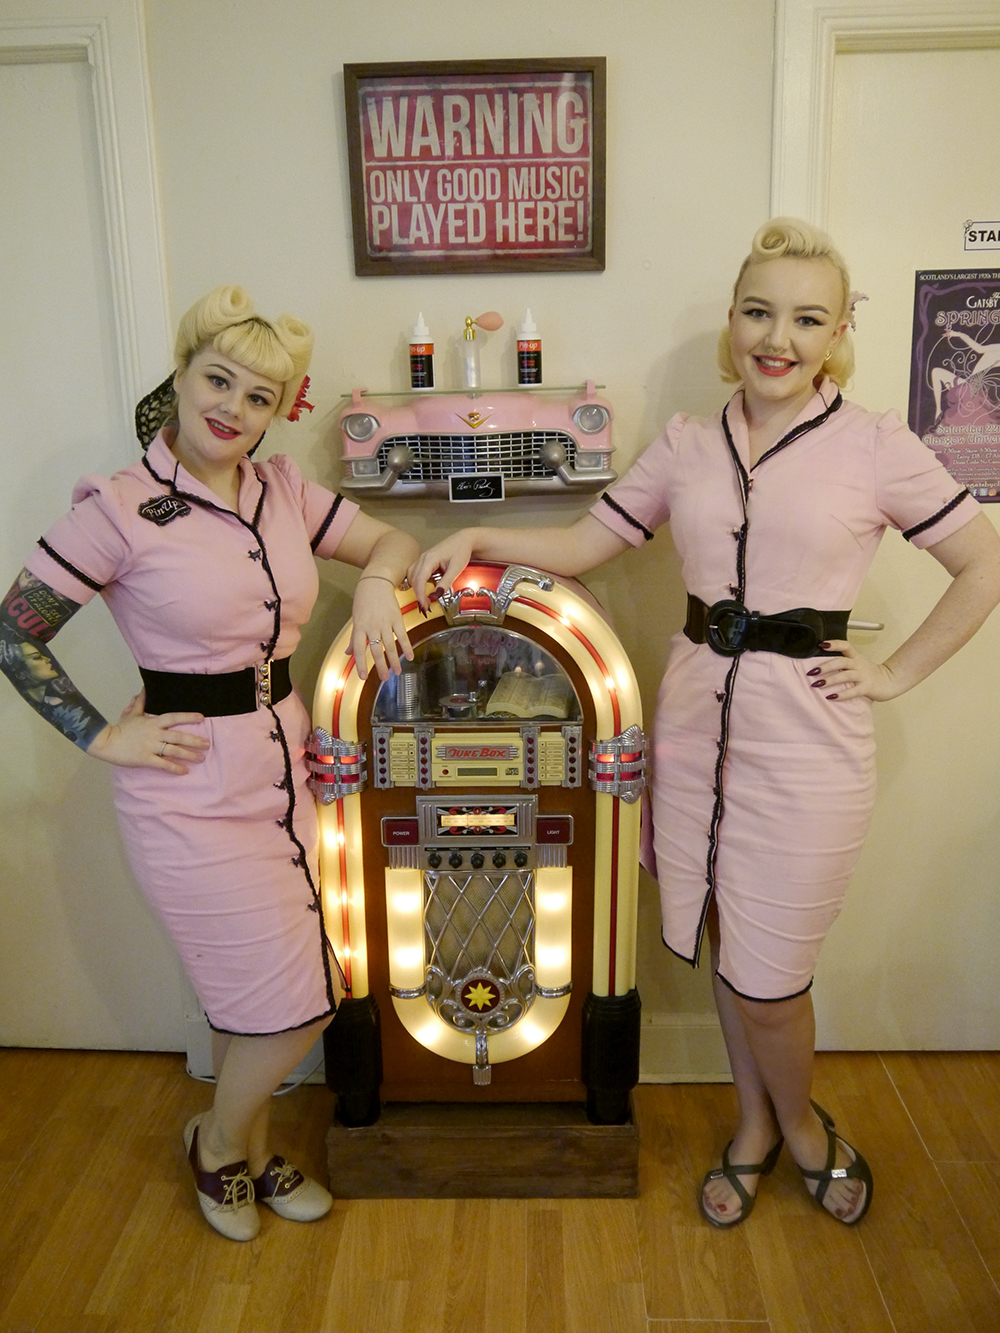 Scottish bloggers, Edinburgh bloggers, Dundee bloggers, vintage style Glasgow, Glasgow vintage, Scottish vintage salon, Glasgow vintage salon, vintage salon, vintage hair, retro hair, pin curls, victory rolls, juke box, pink ladies, PinUps vintage Glasgow, vinate style